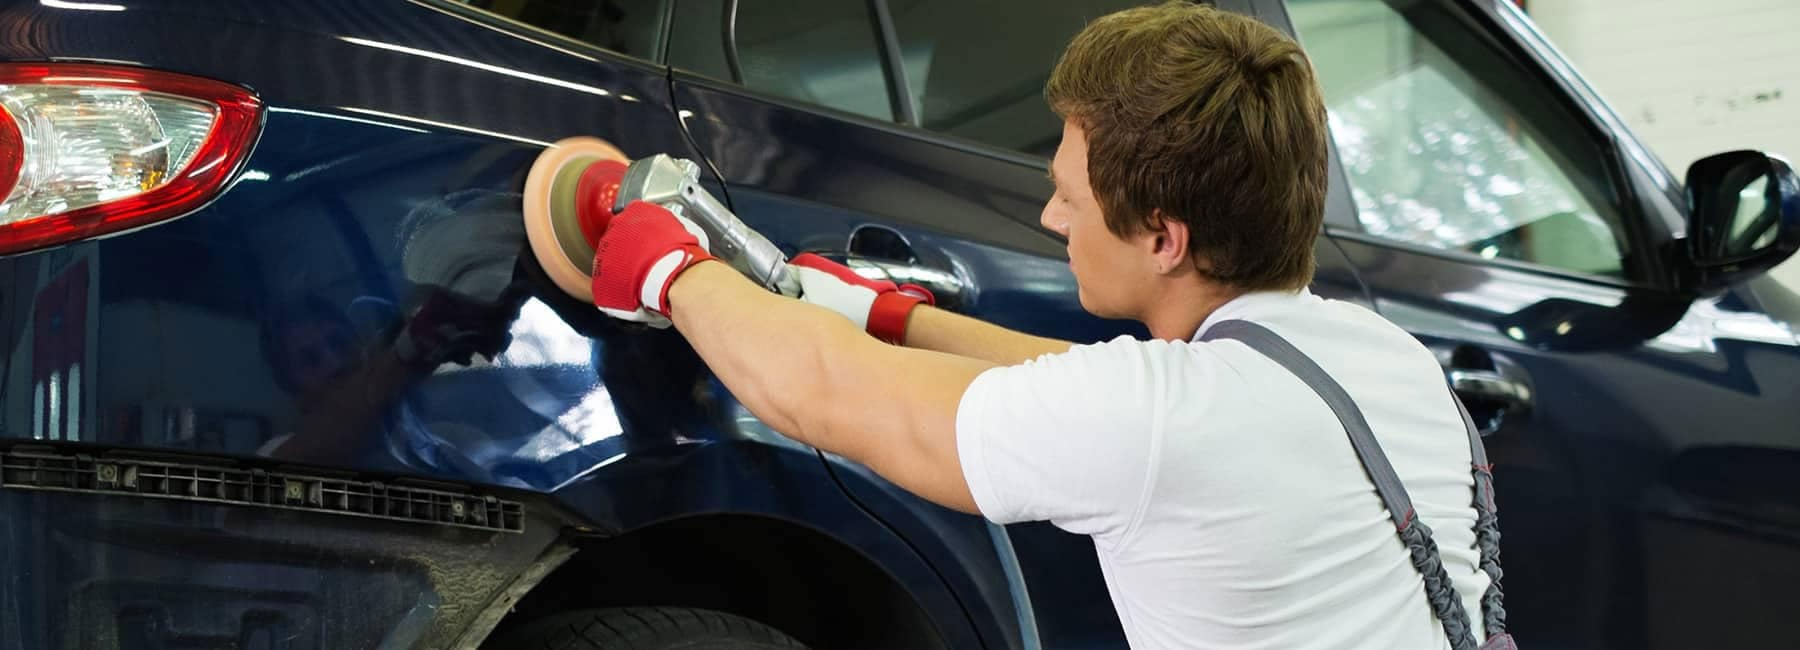 Mechanic performing body work to a car